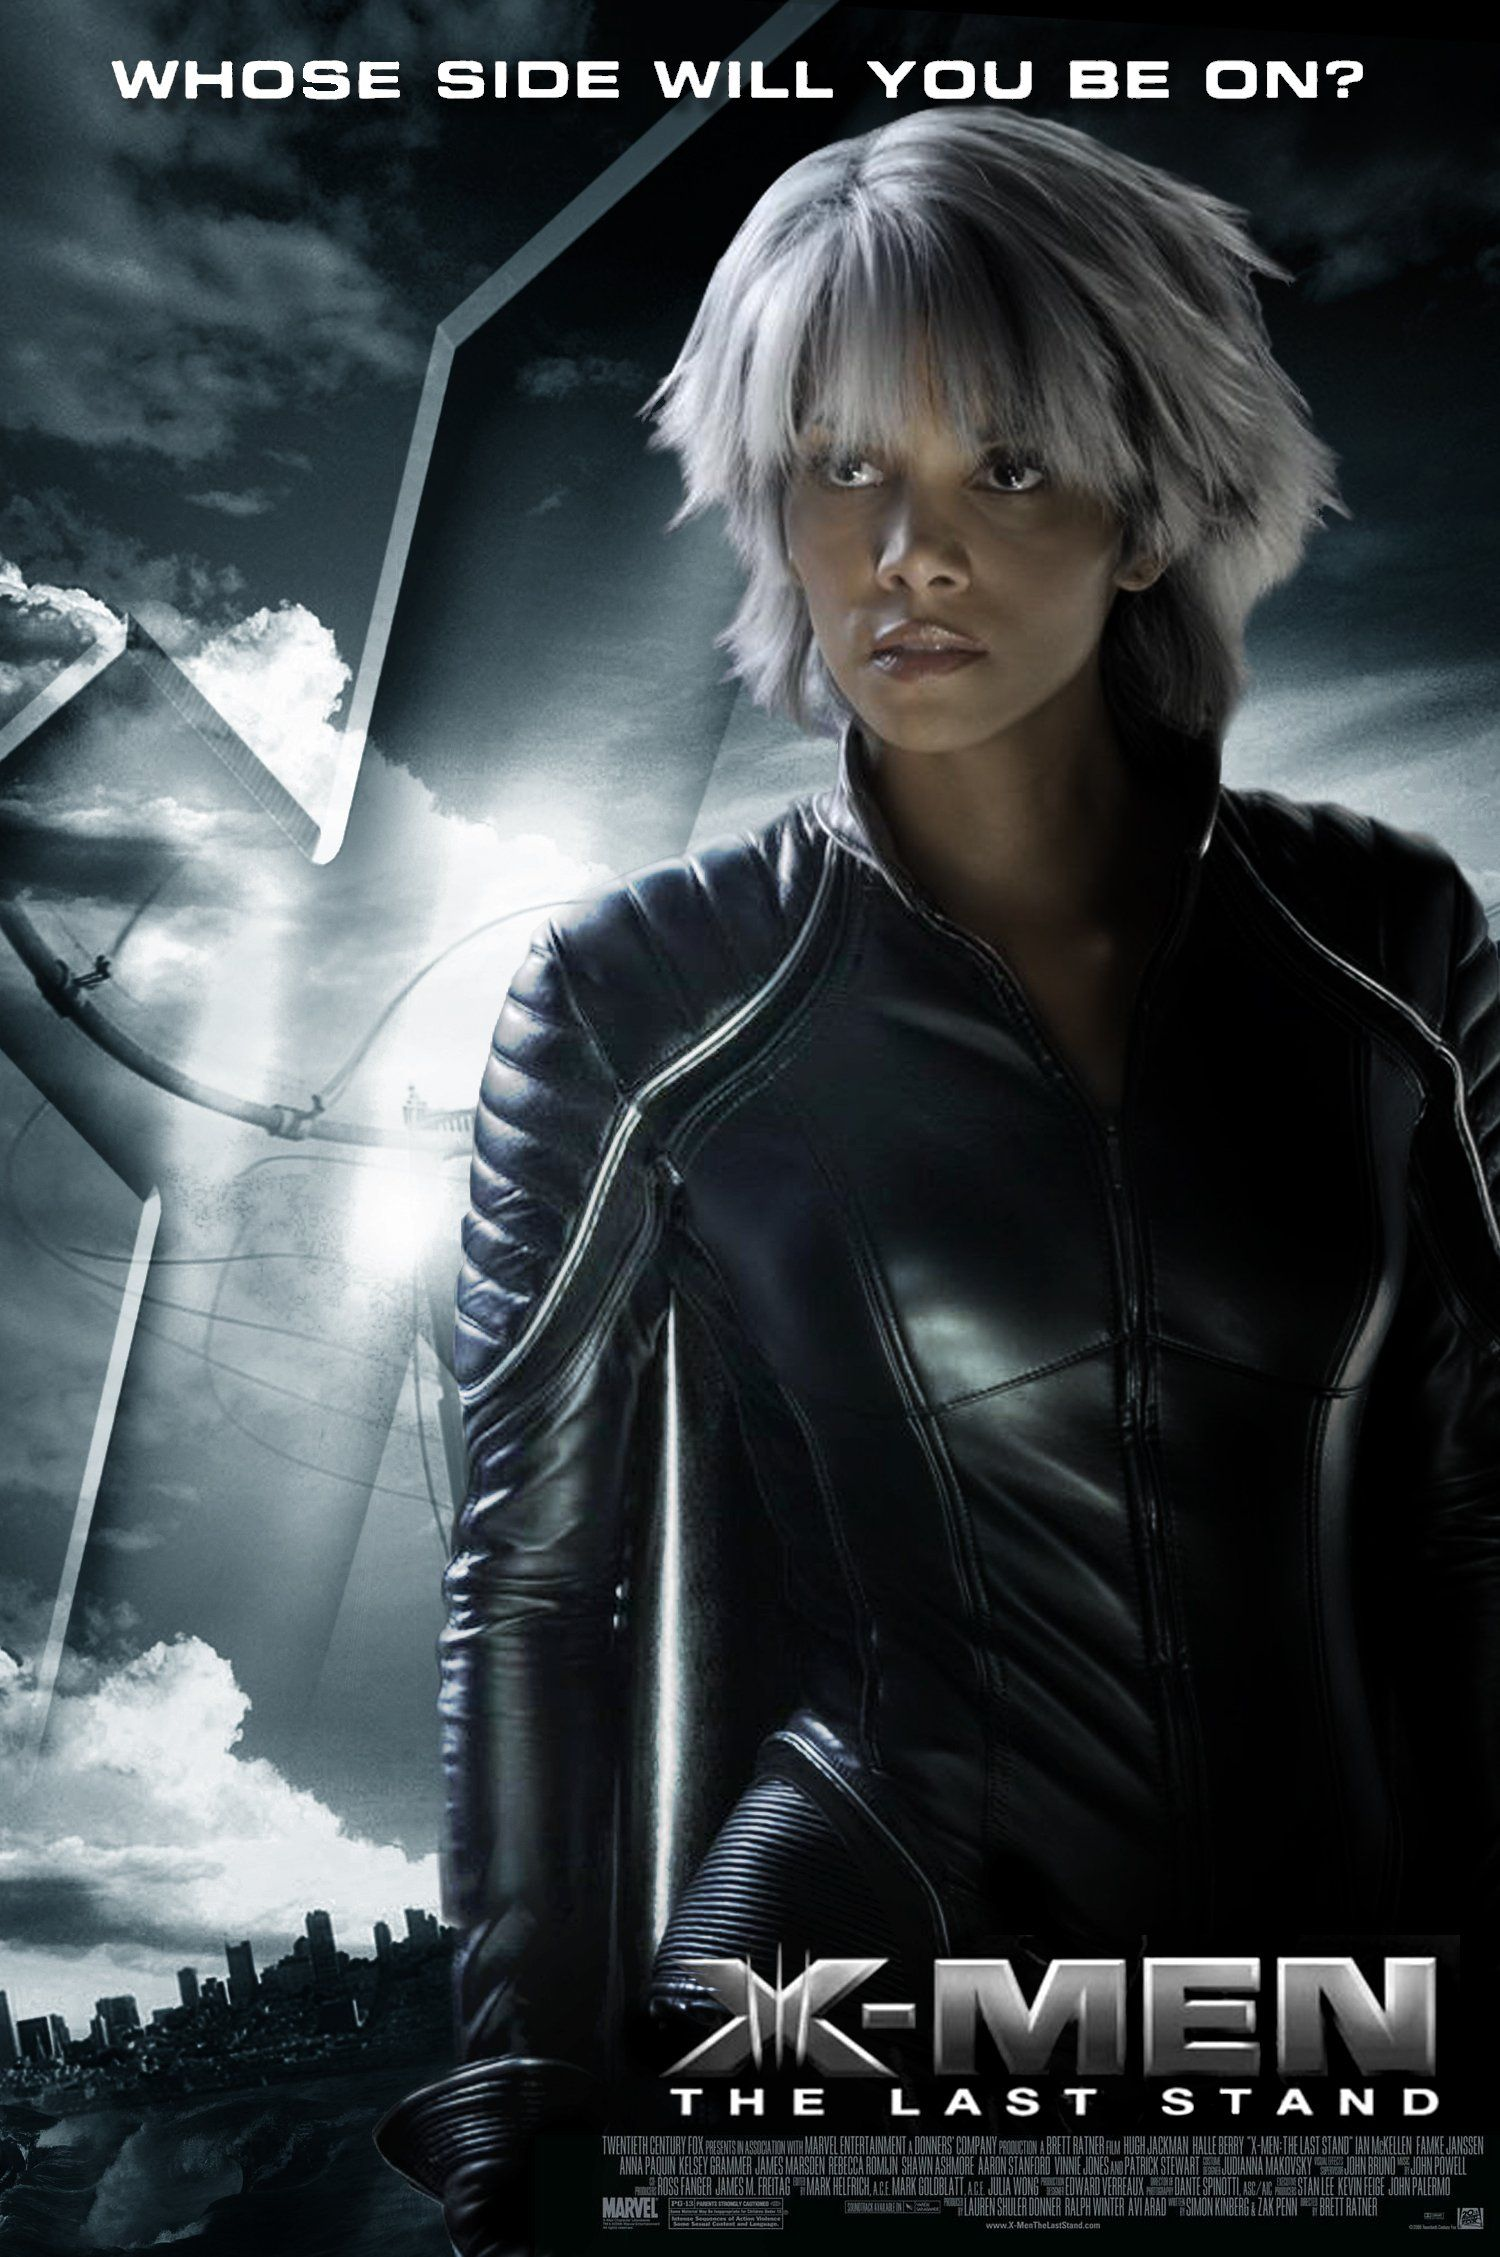 storm in quotxmen the last standquot 2006 entertainment